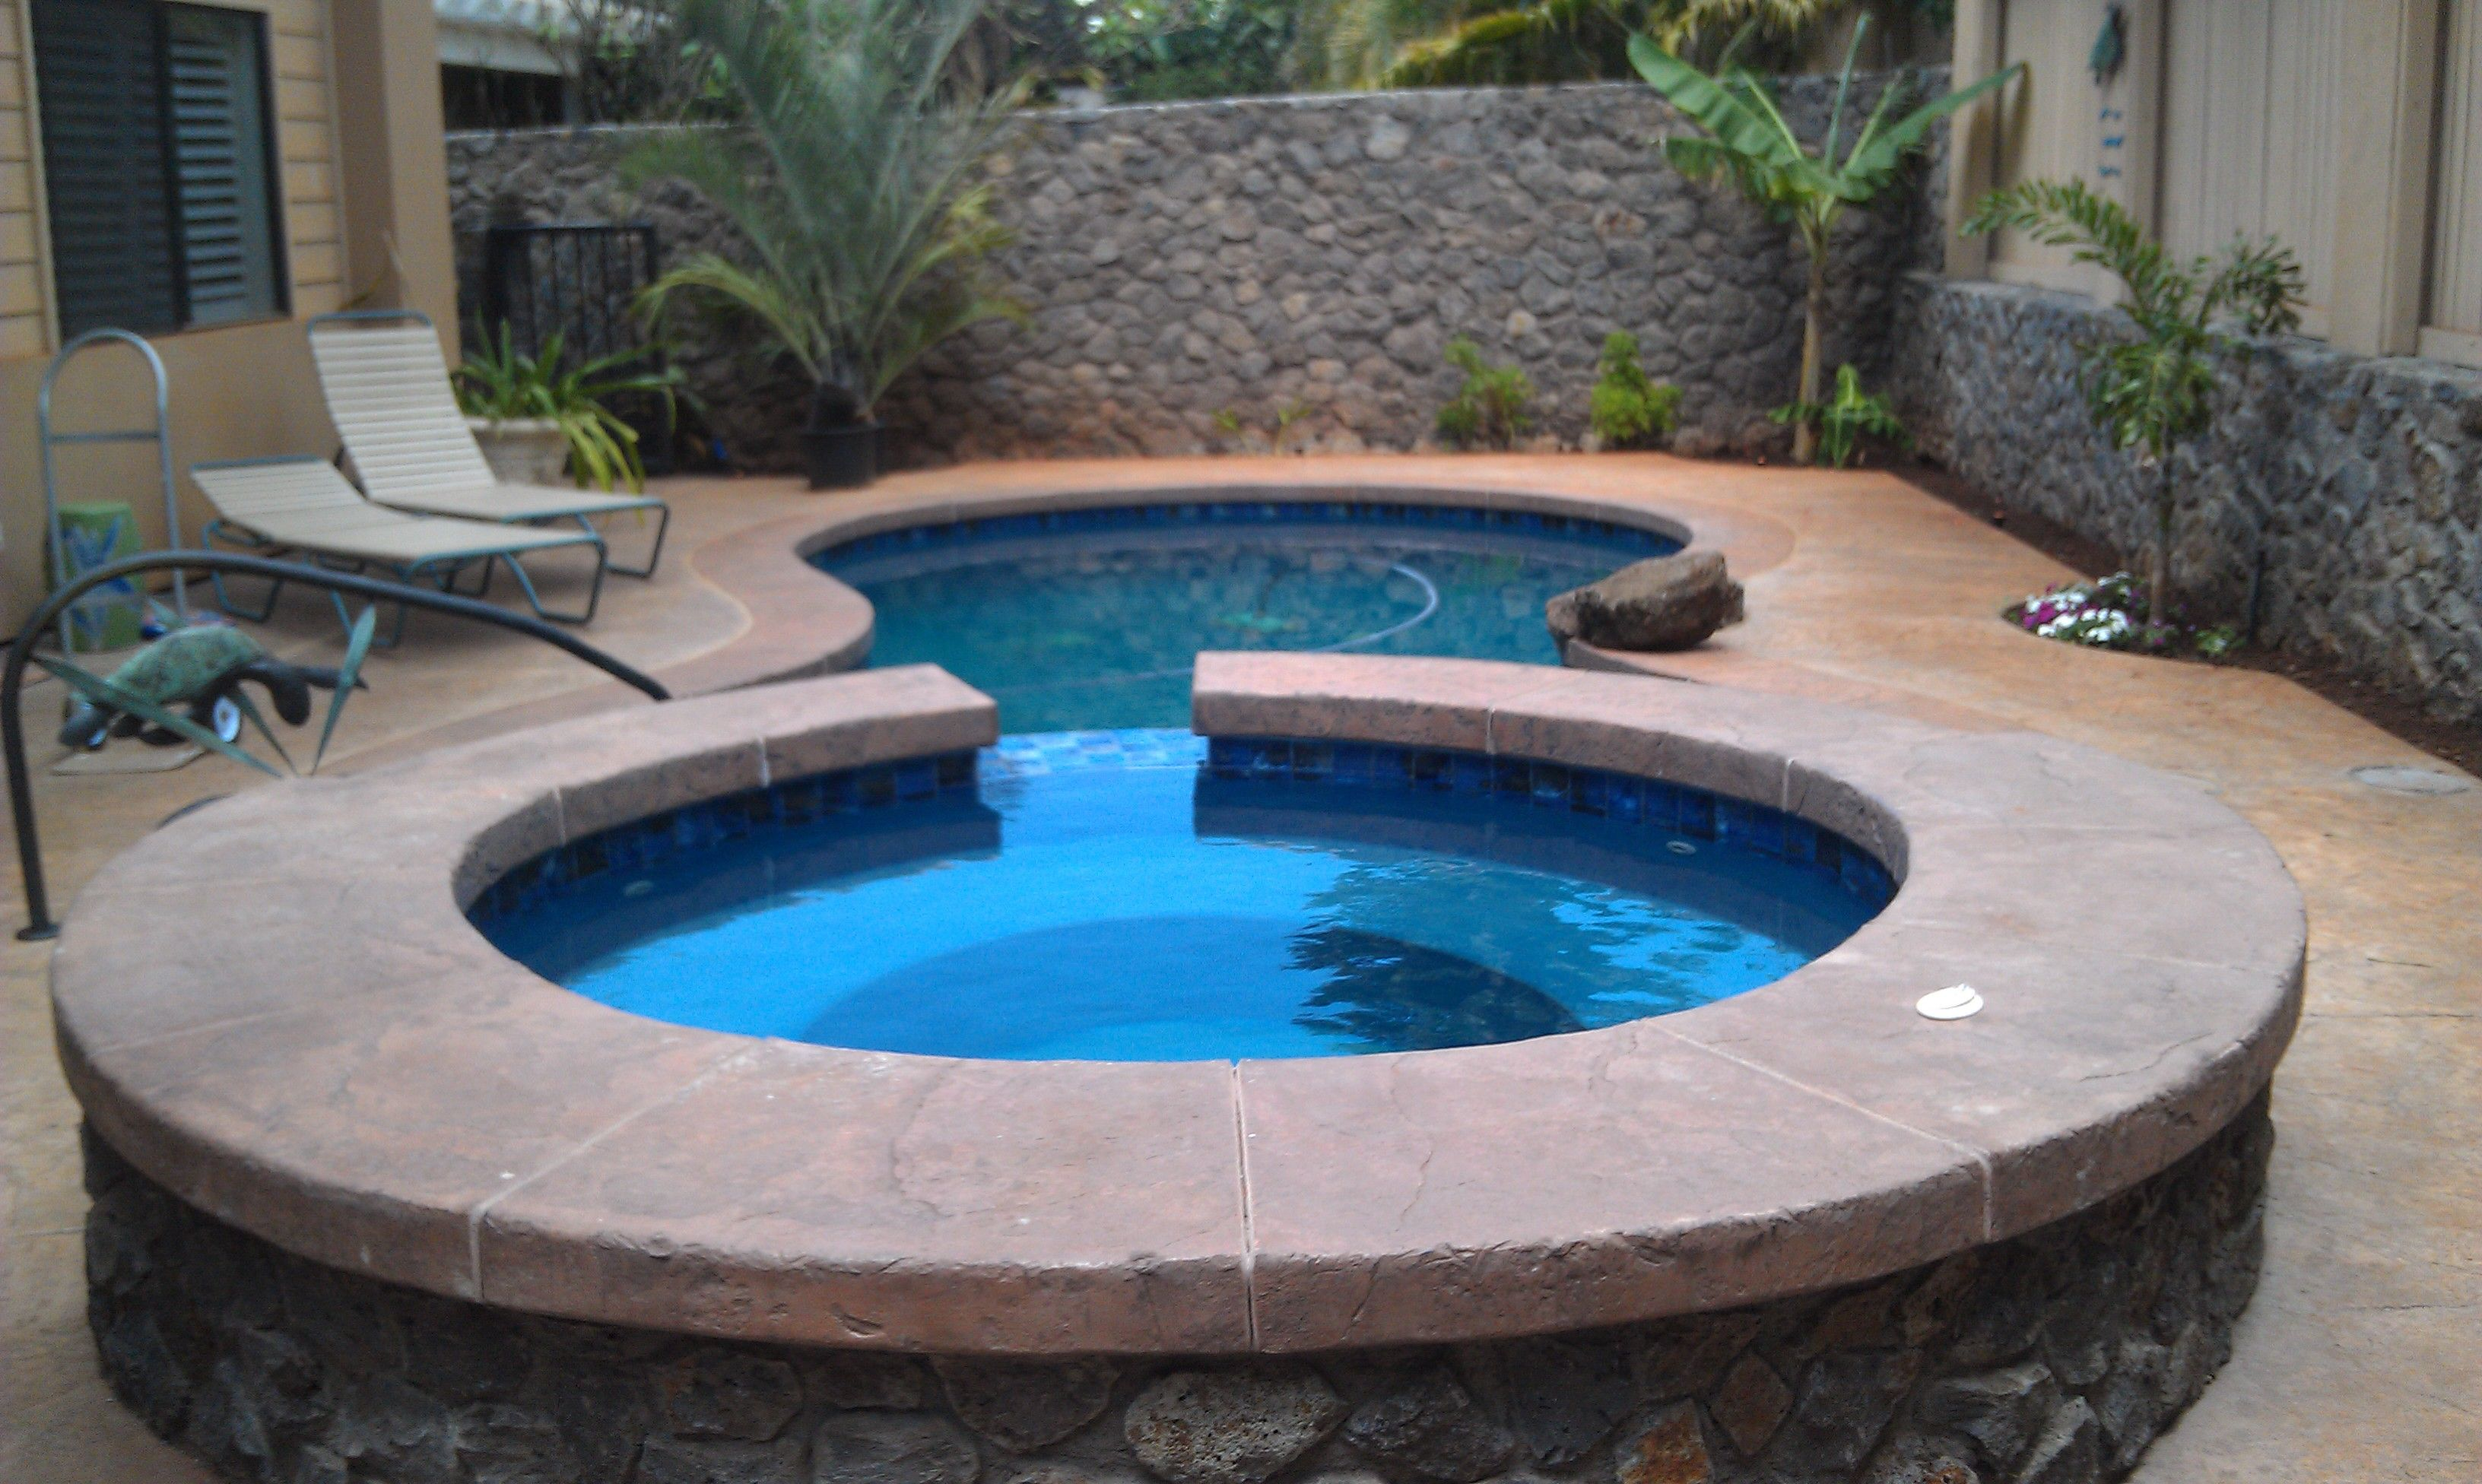 Pacific Blue Backyard Pool & Spa Small Pool For A